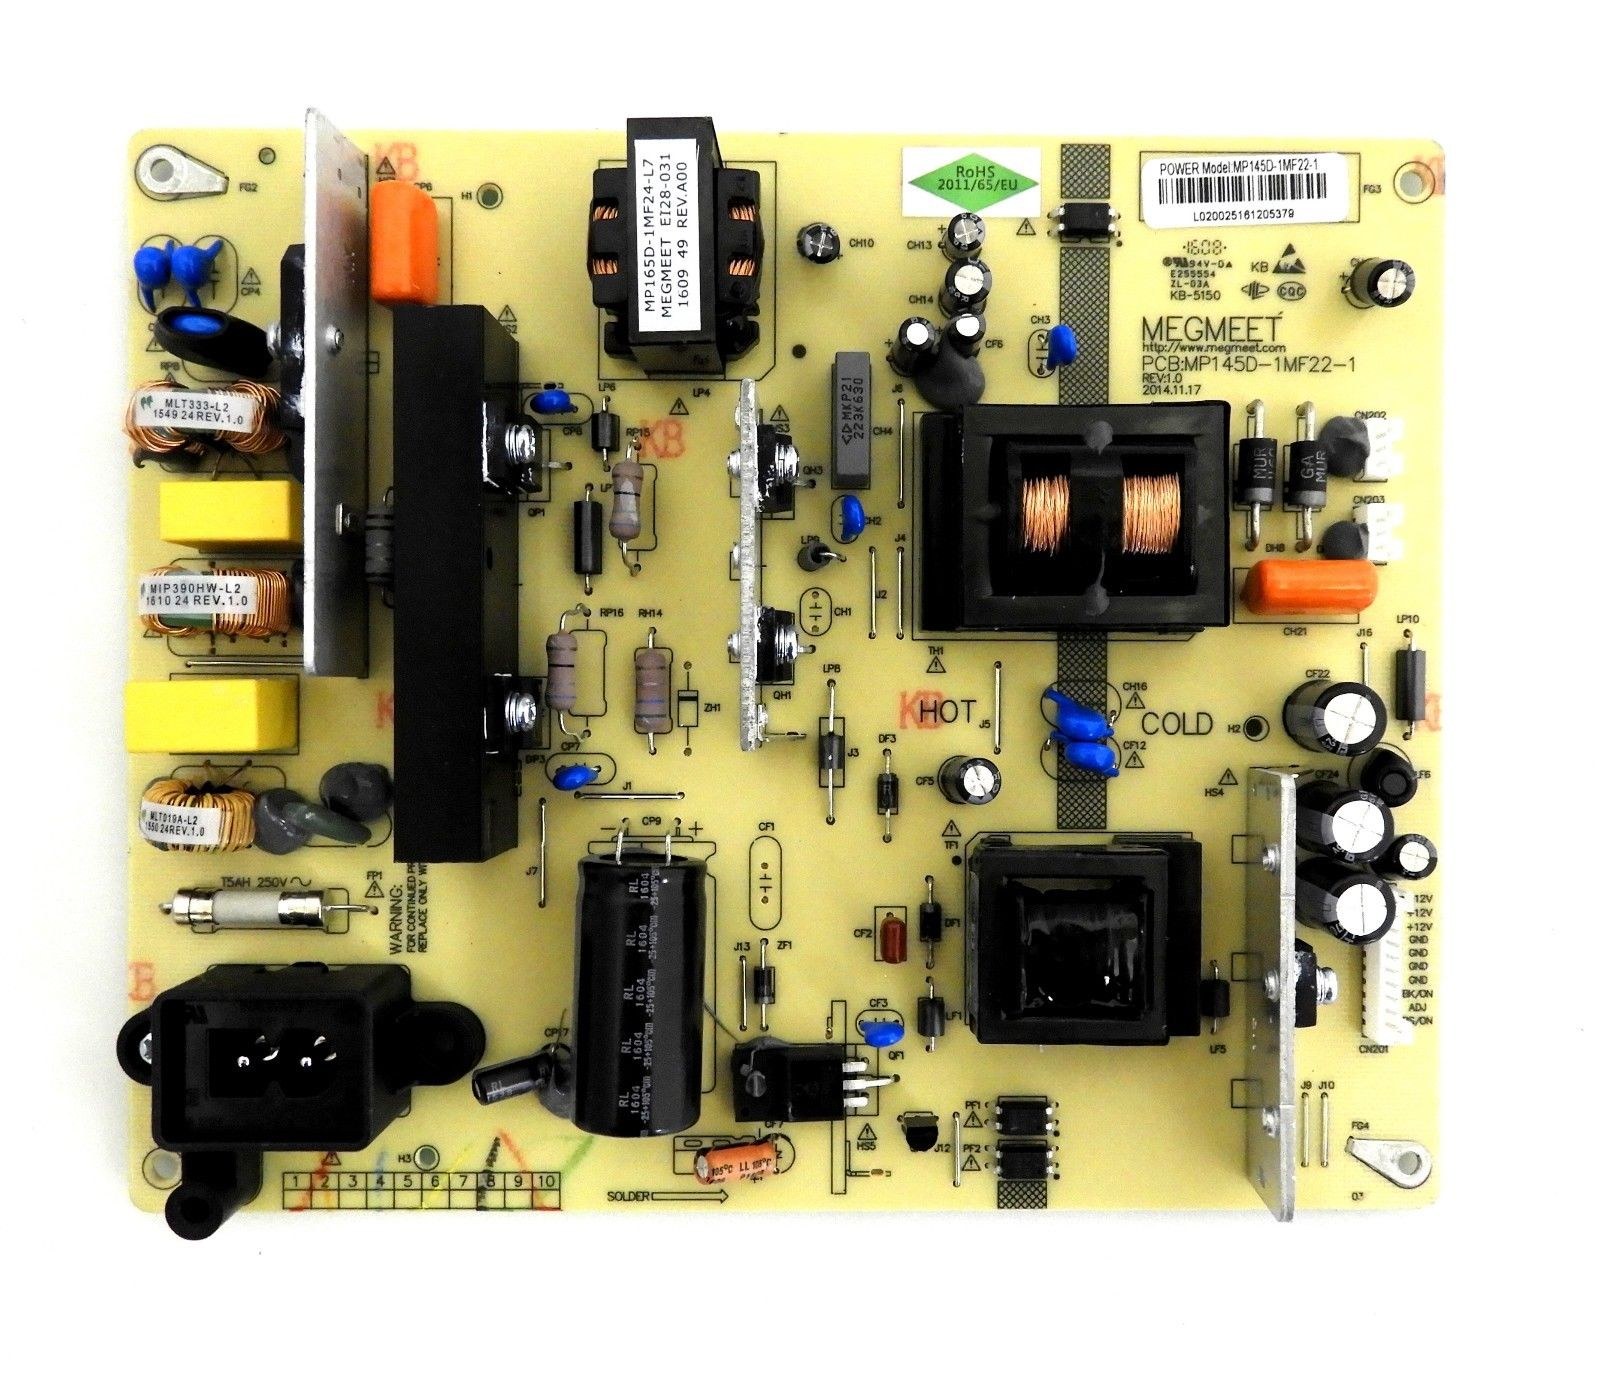 NEW MP145D-1MF22-1 POWER SUPPLY BOARD FOR HITACHI LE55A6R9A